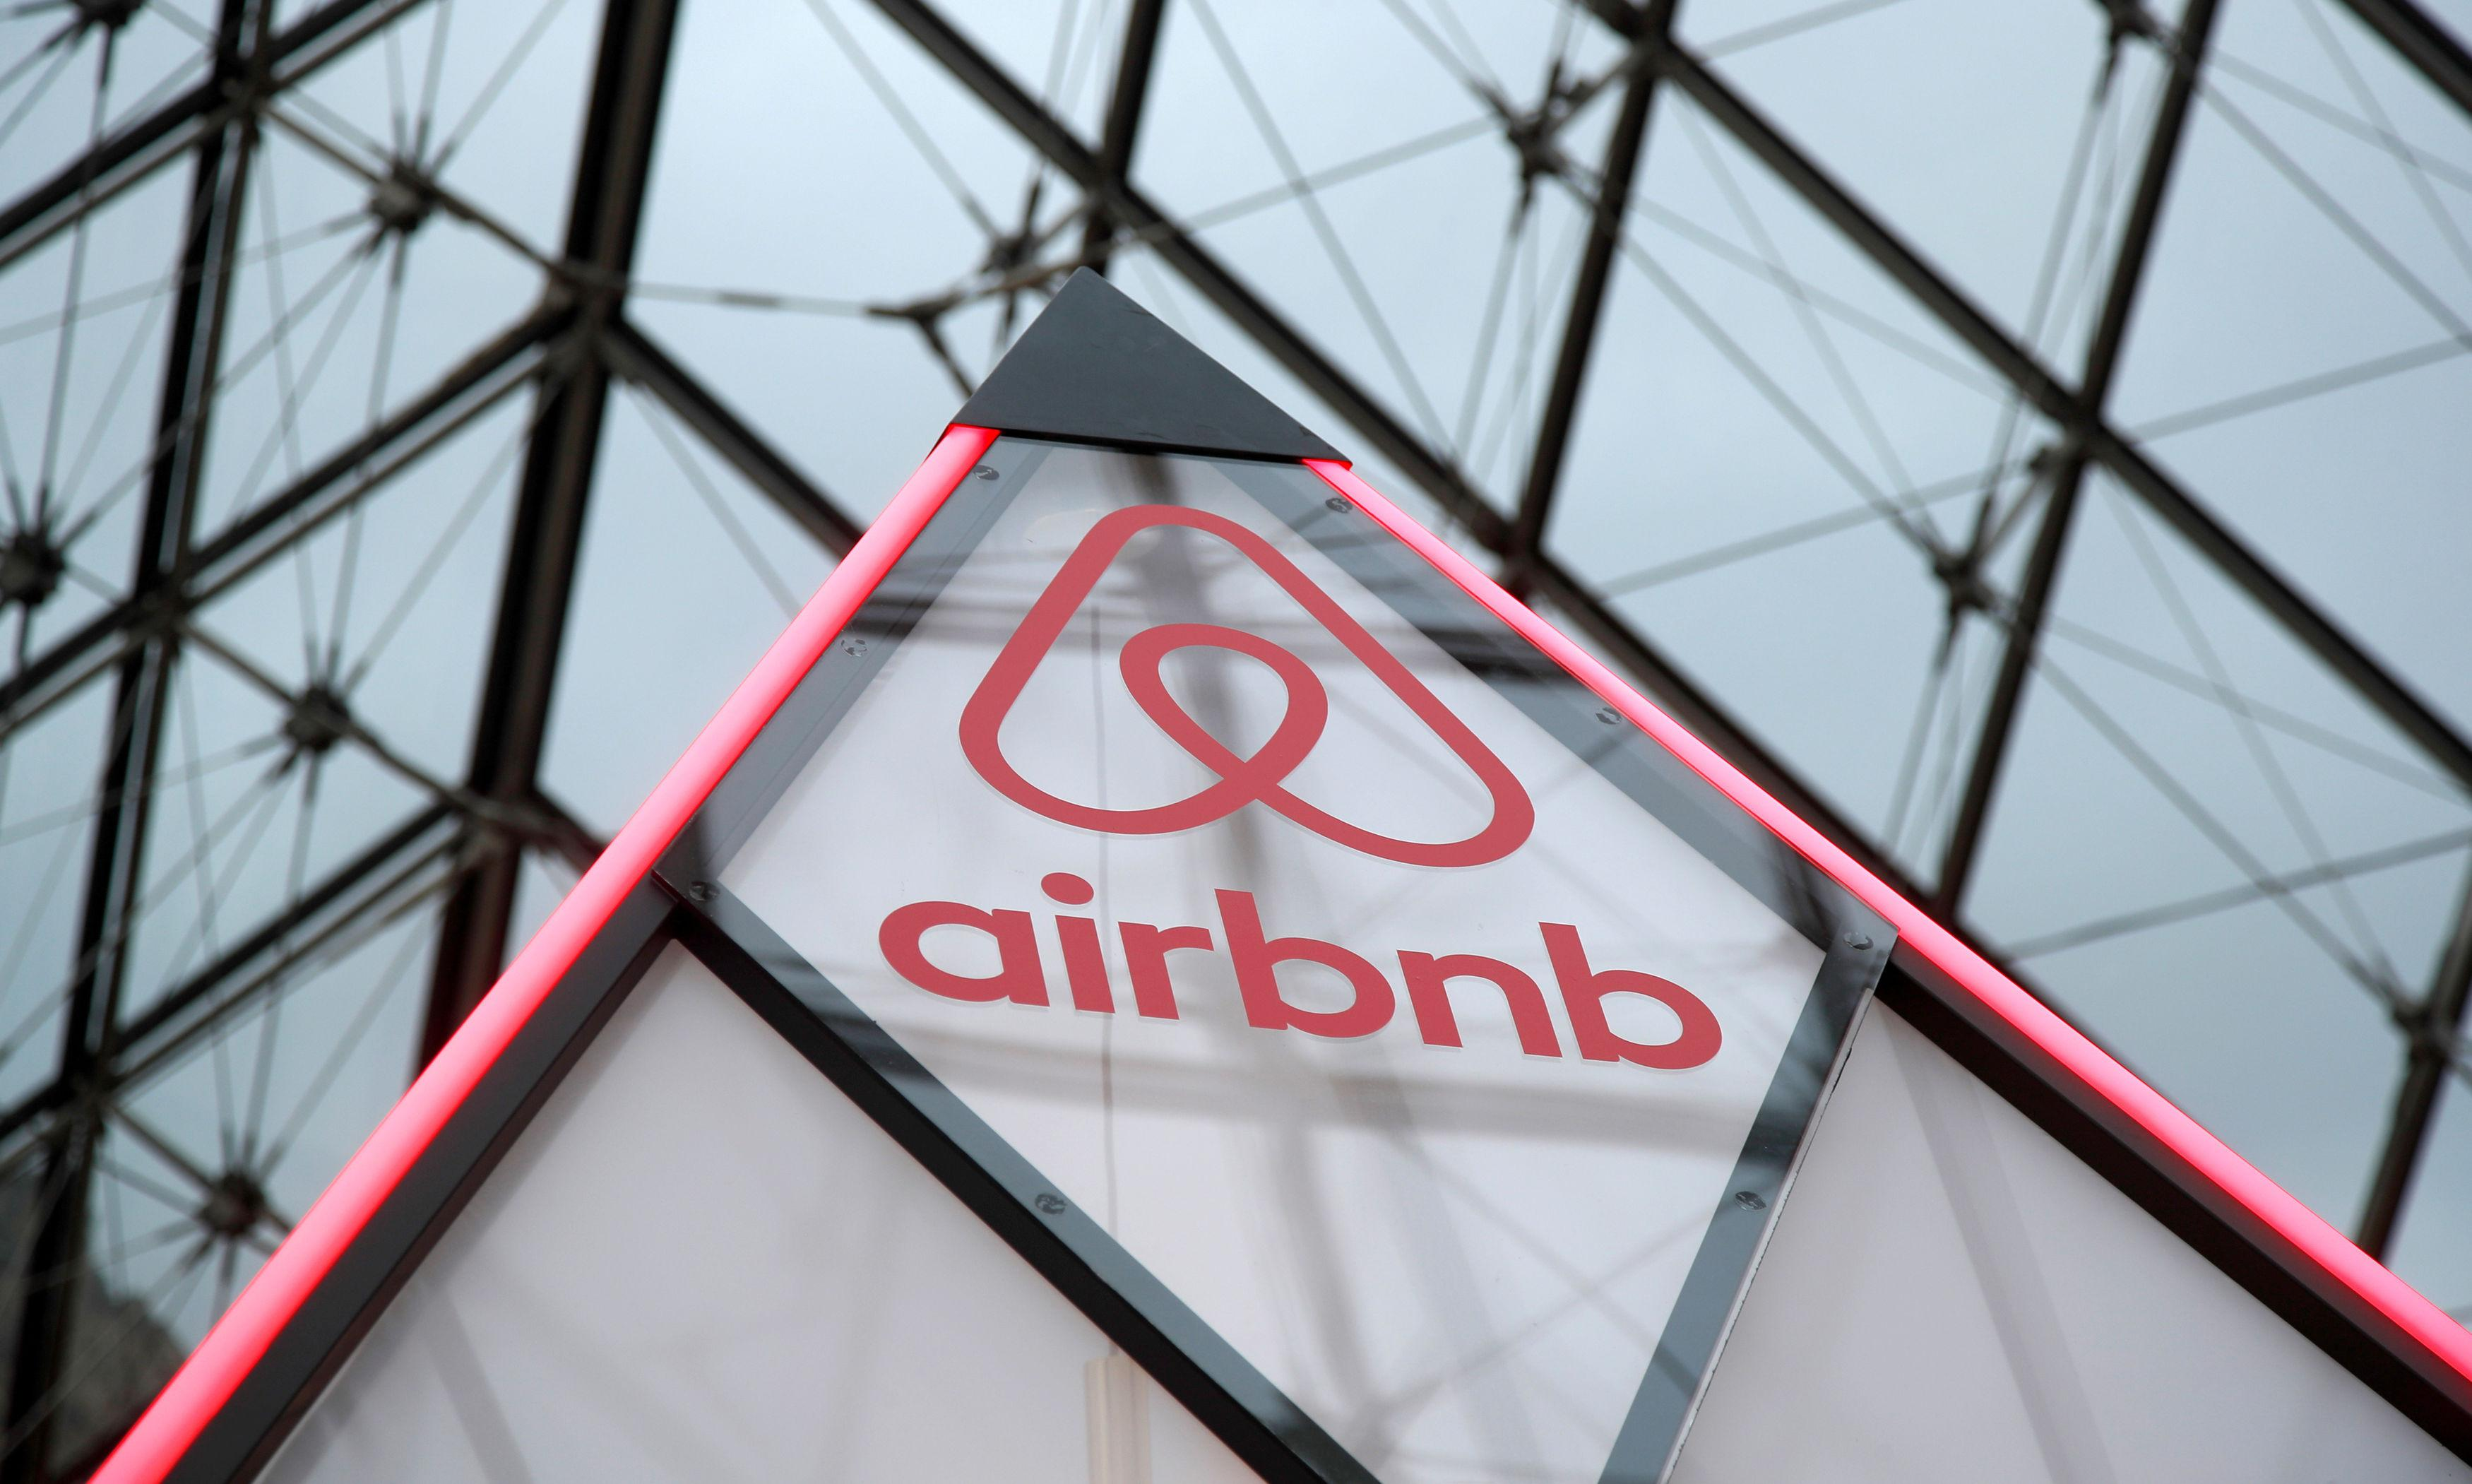 Airbnb announces it will go public next year after WeWork delays IPO